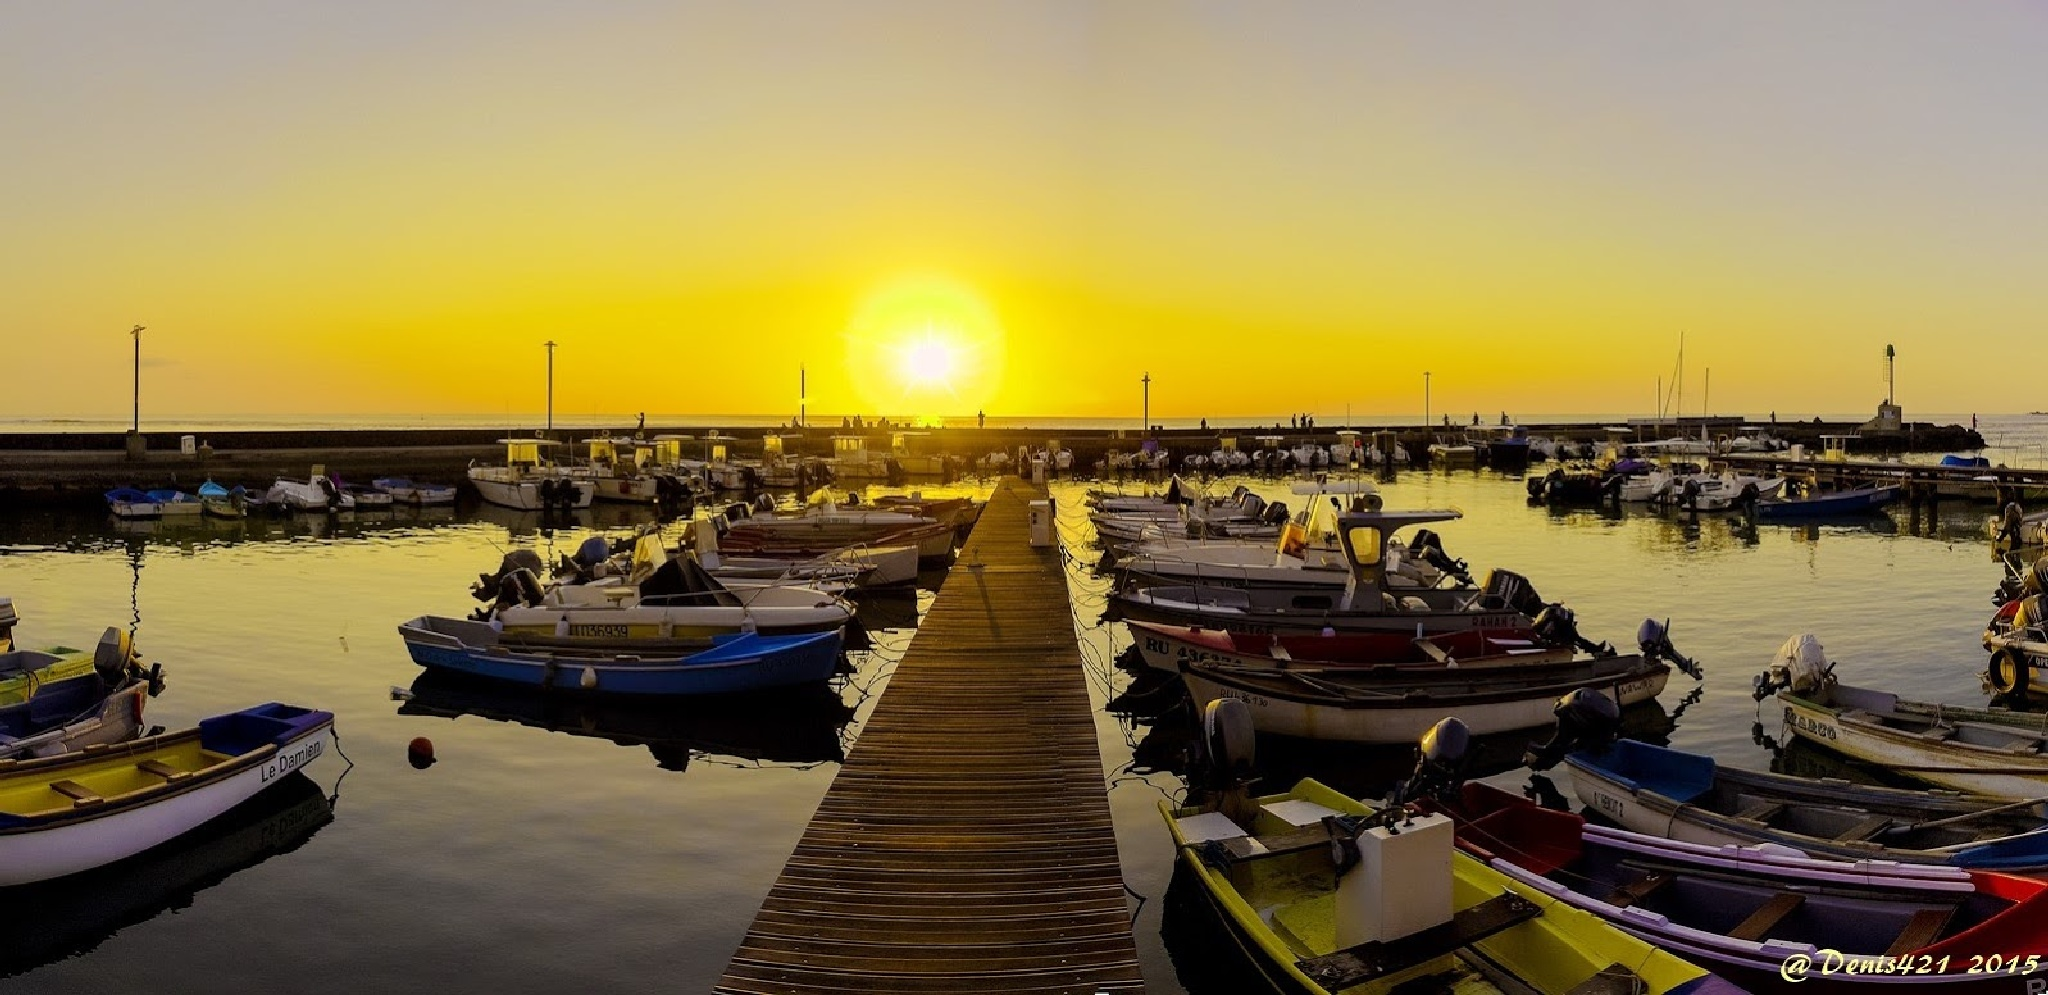 Marina and sunset by Denis Payet